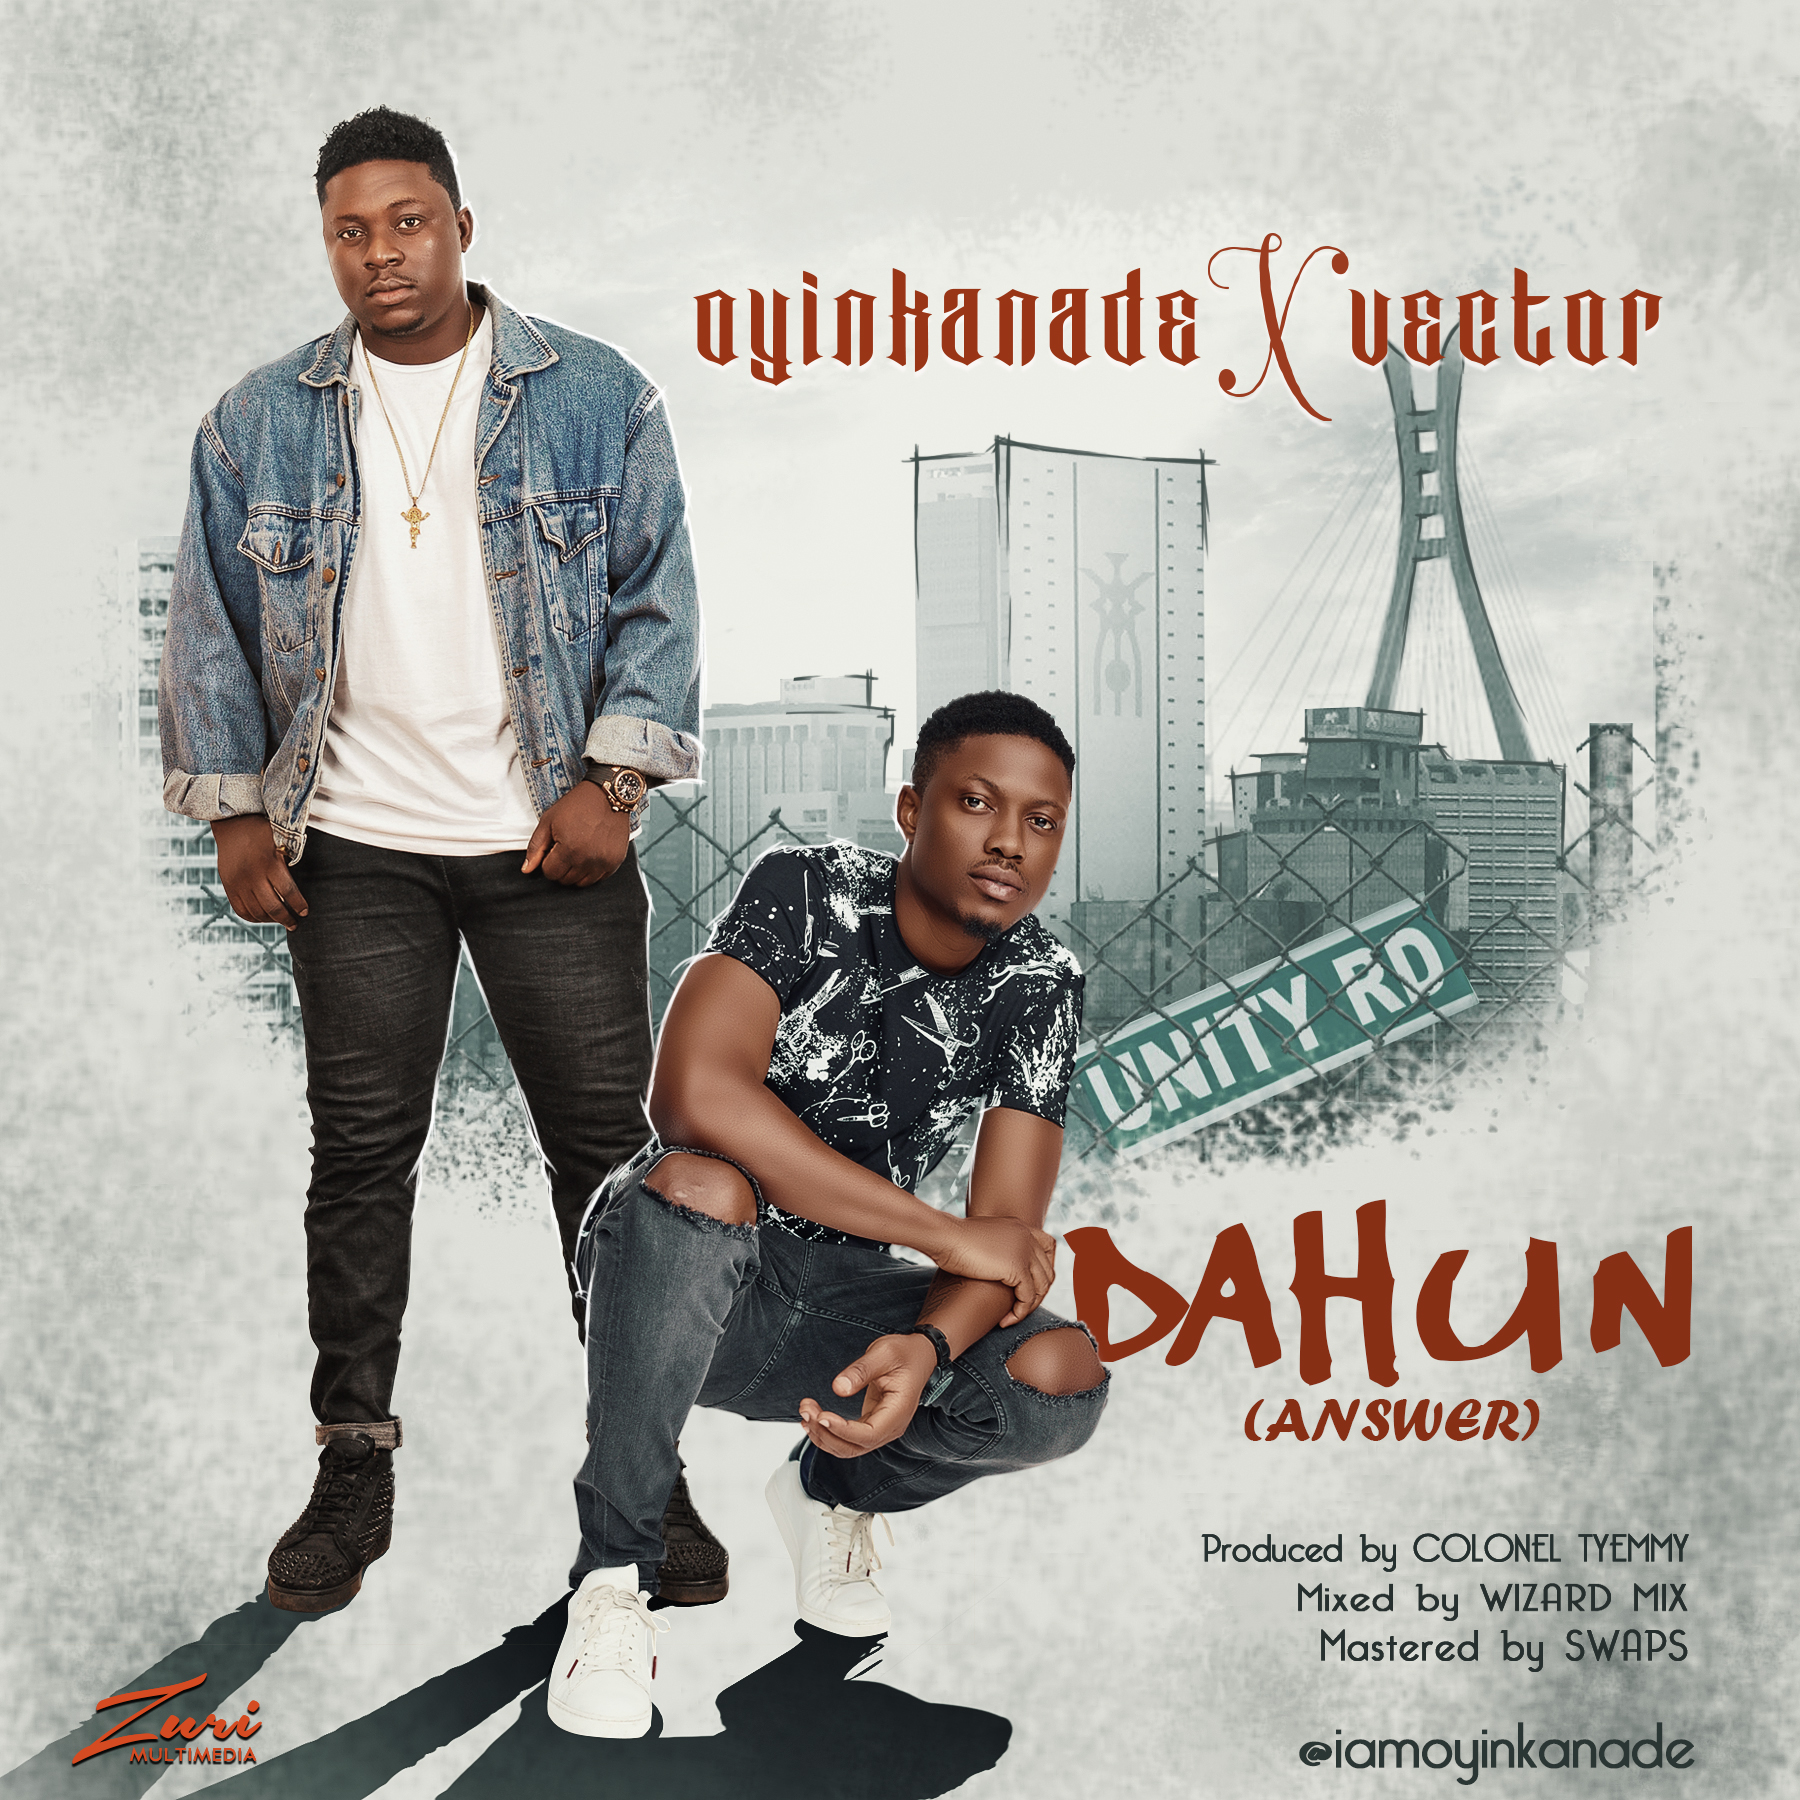 New Music: Oyinkanade feat. Vector – Dahun